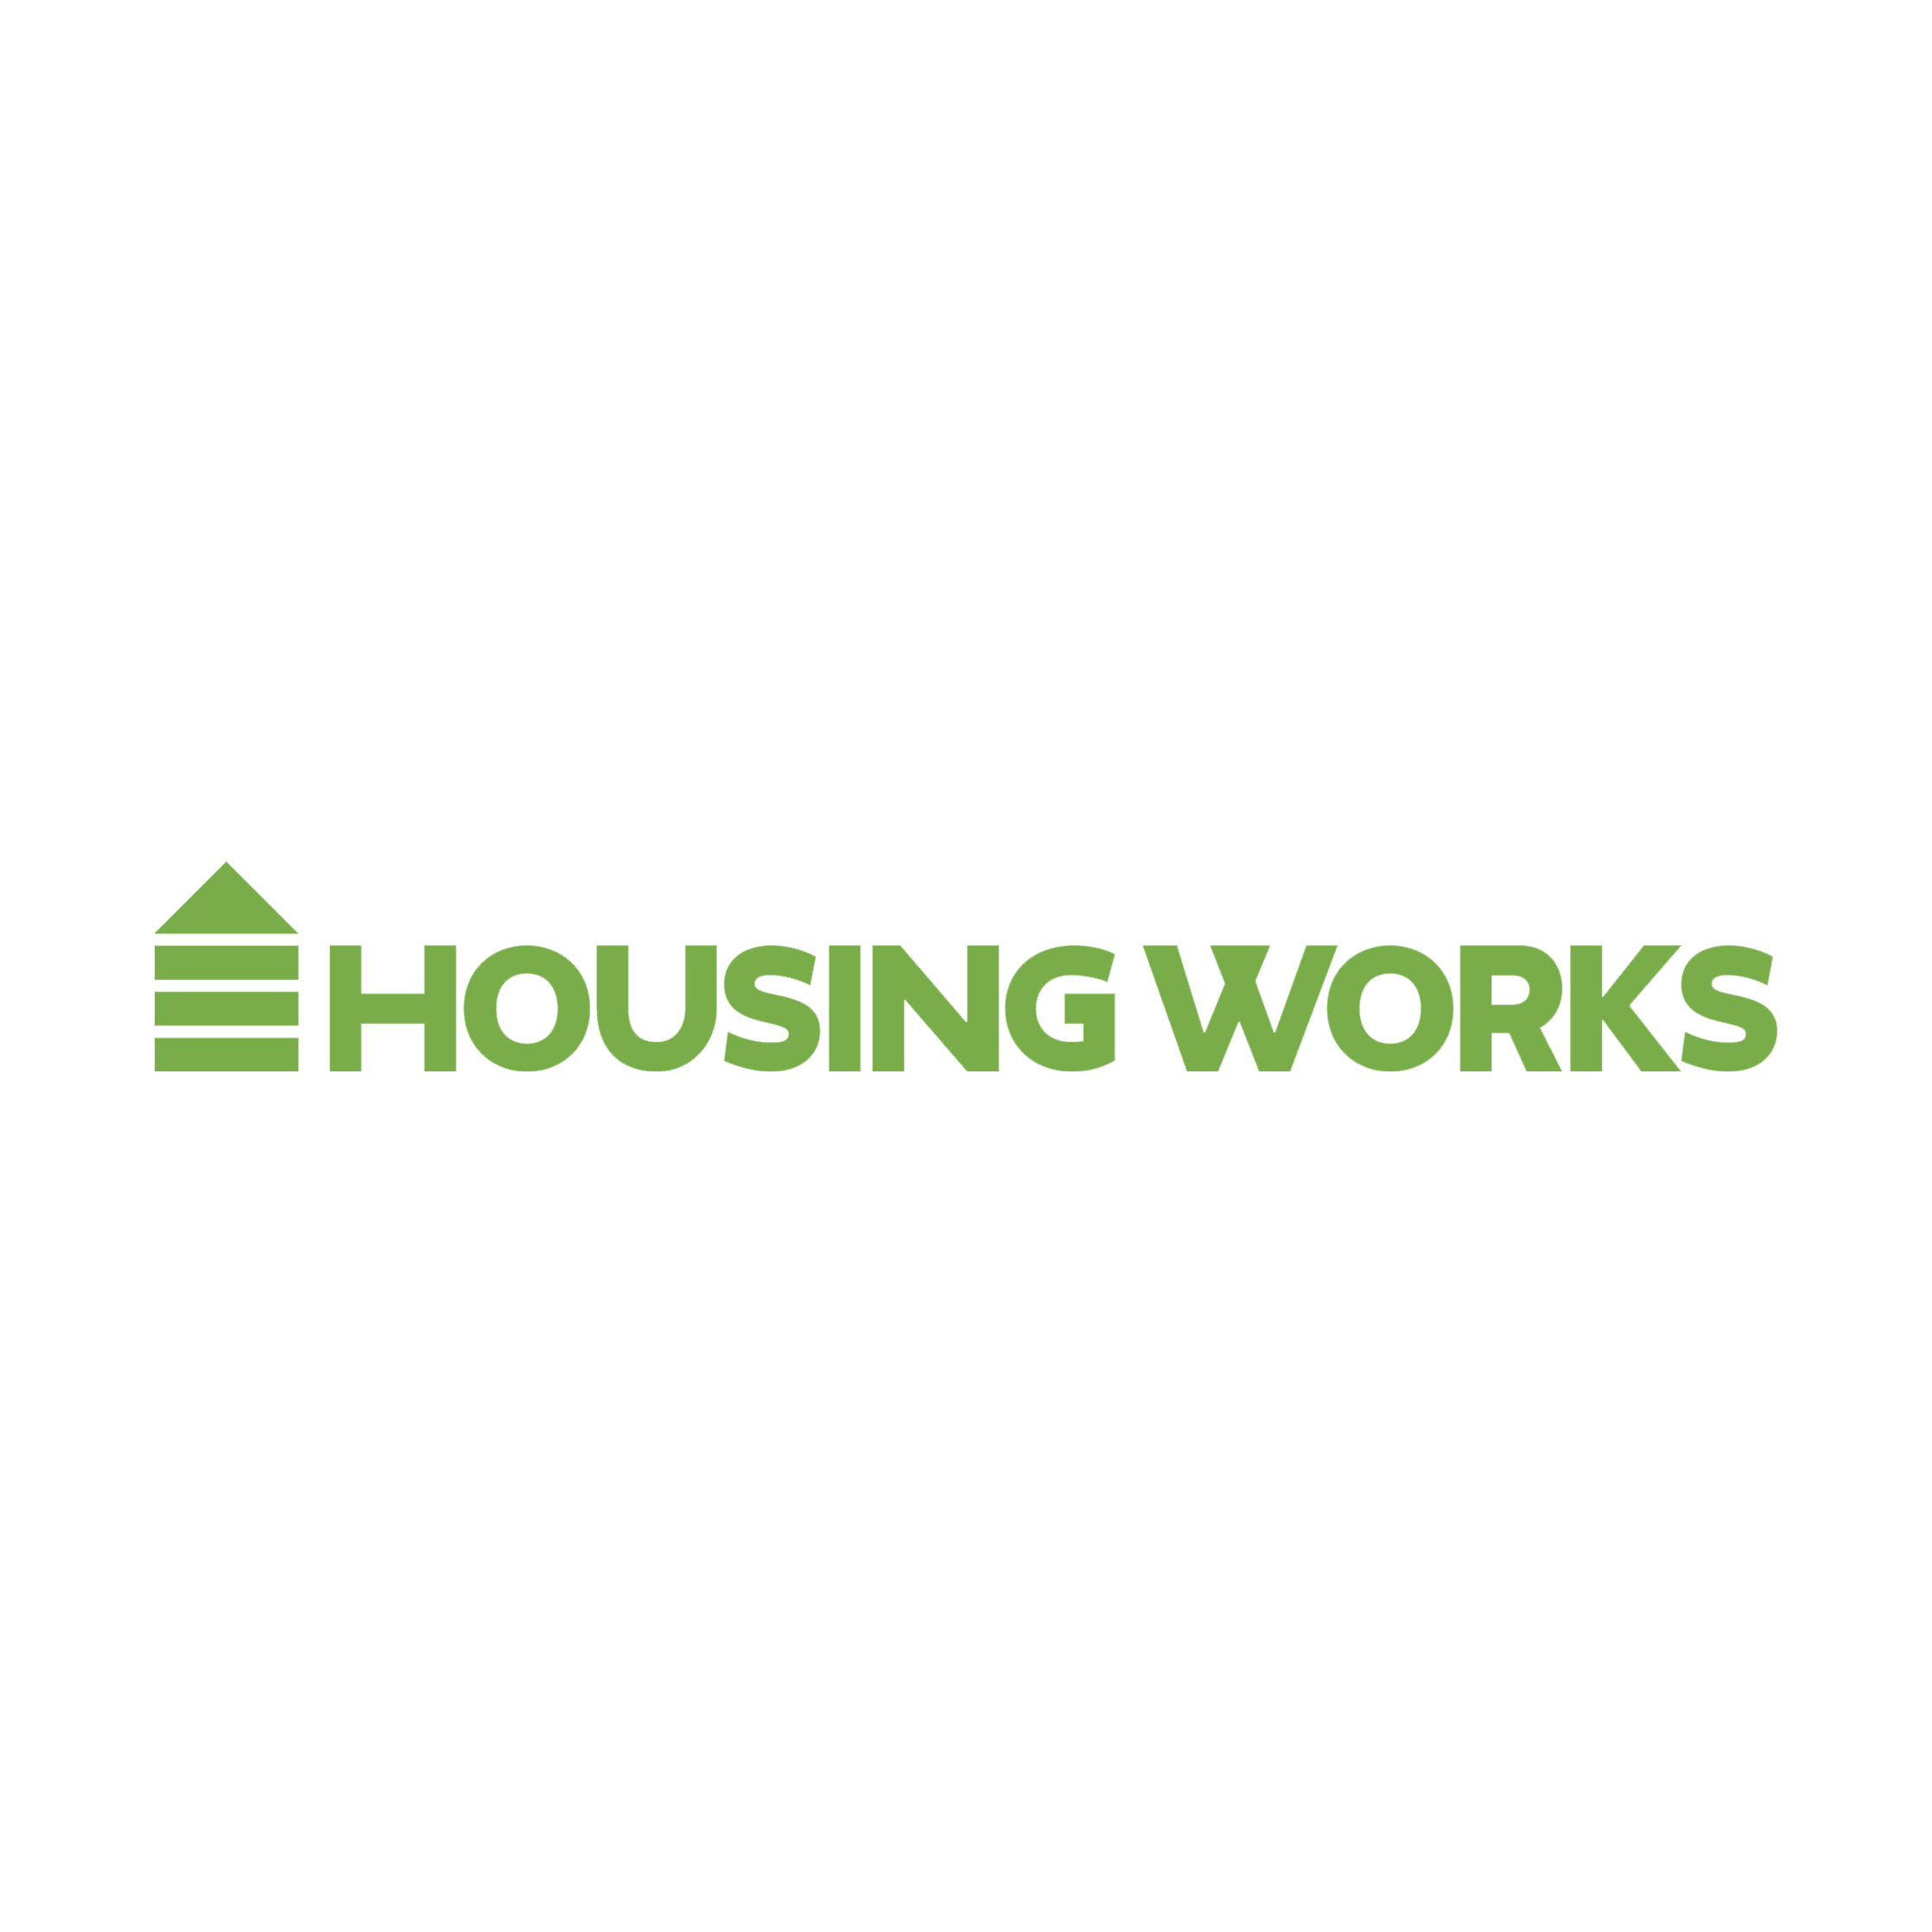 HousingWorks logo green.png